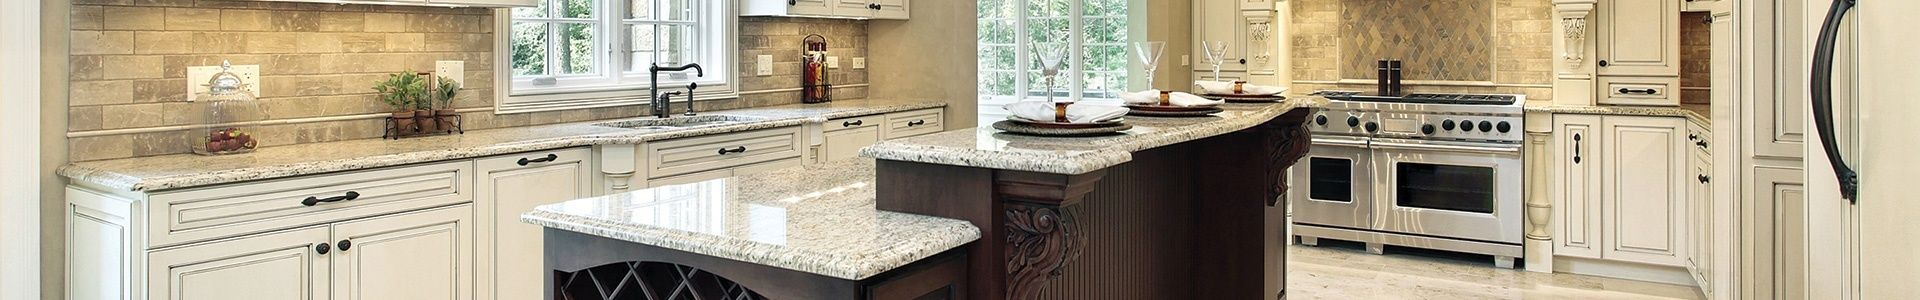 Introducing the Hamilton Style Door: It's very common for homeowners to want to change the style of their kitchen when they remodel. In a…